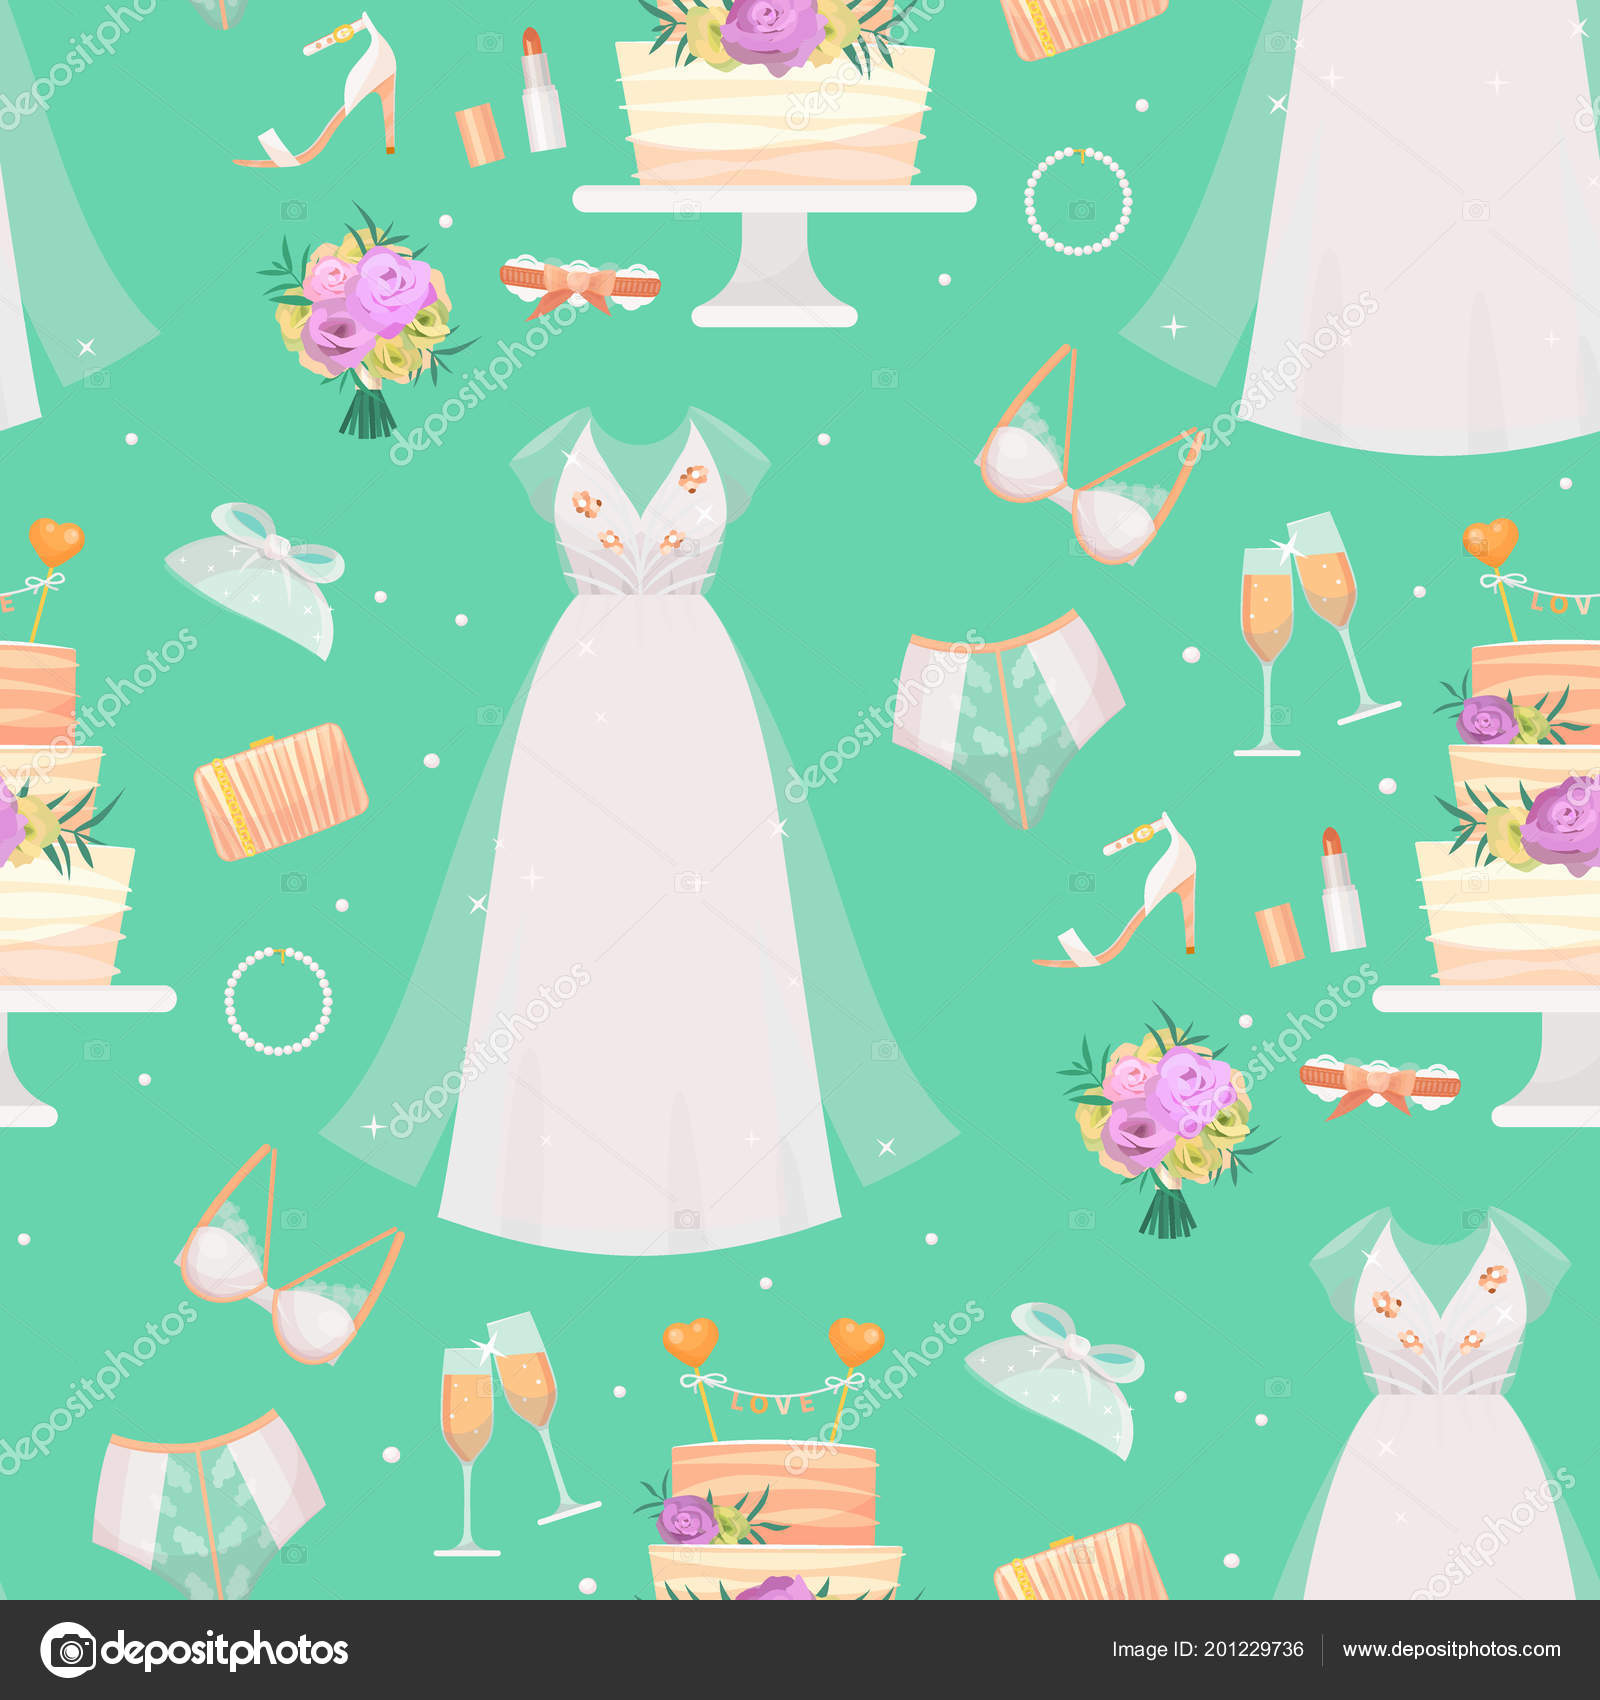 wedding bride dress accessories vector fashion style bridal shower sketch decor cartoon silhouette portrait illustration invitation design look female